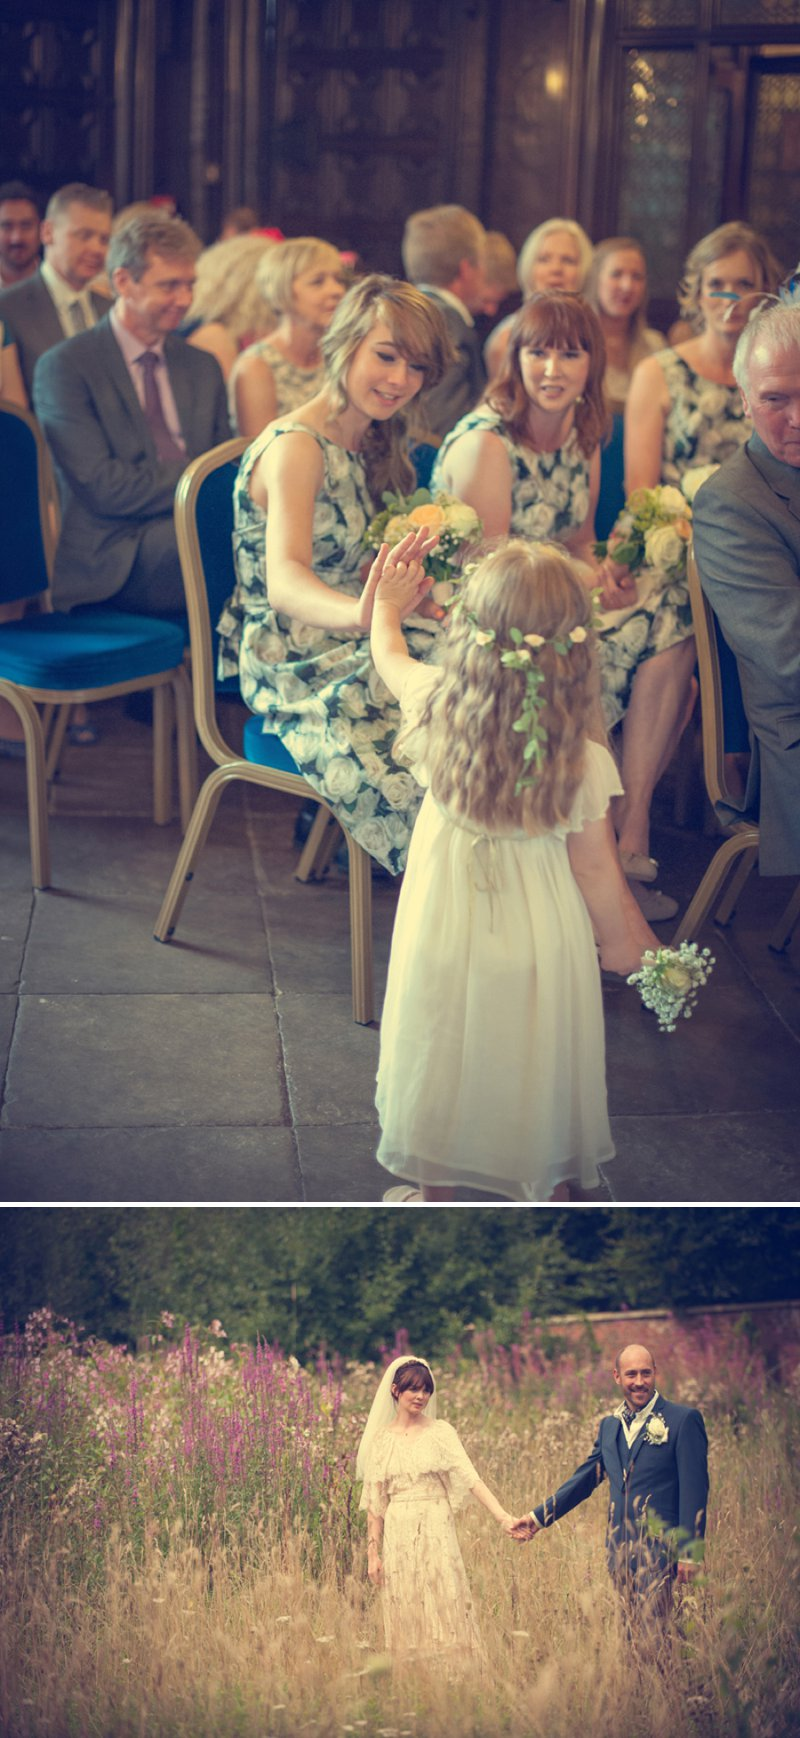 A 70s Inspired Wedding With A Pastel Colour Scheme And Bride In Vintage Lace Dress Found On Ebay And Groom In Navy Three Piece Suit By Paul Smith With Images From Steve Longbottom Mr Sleeve Wedding Photography 9